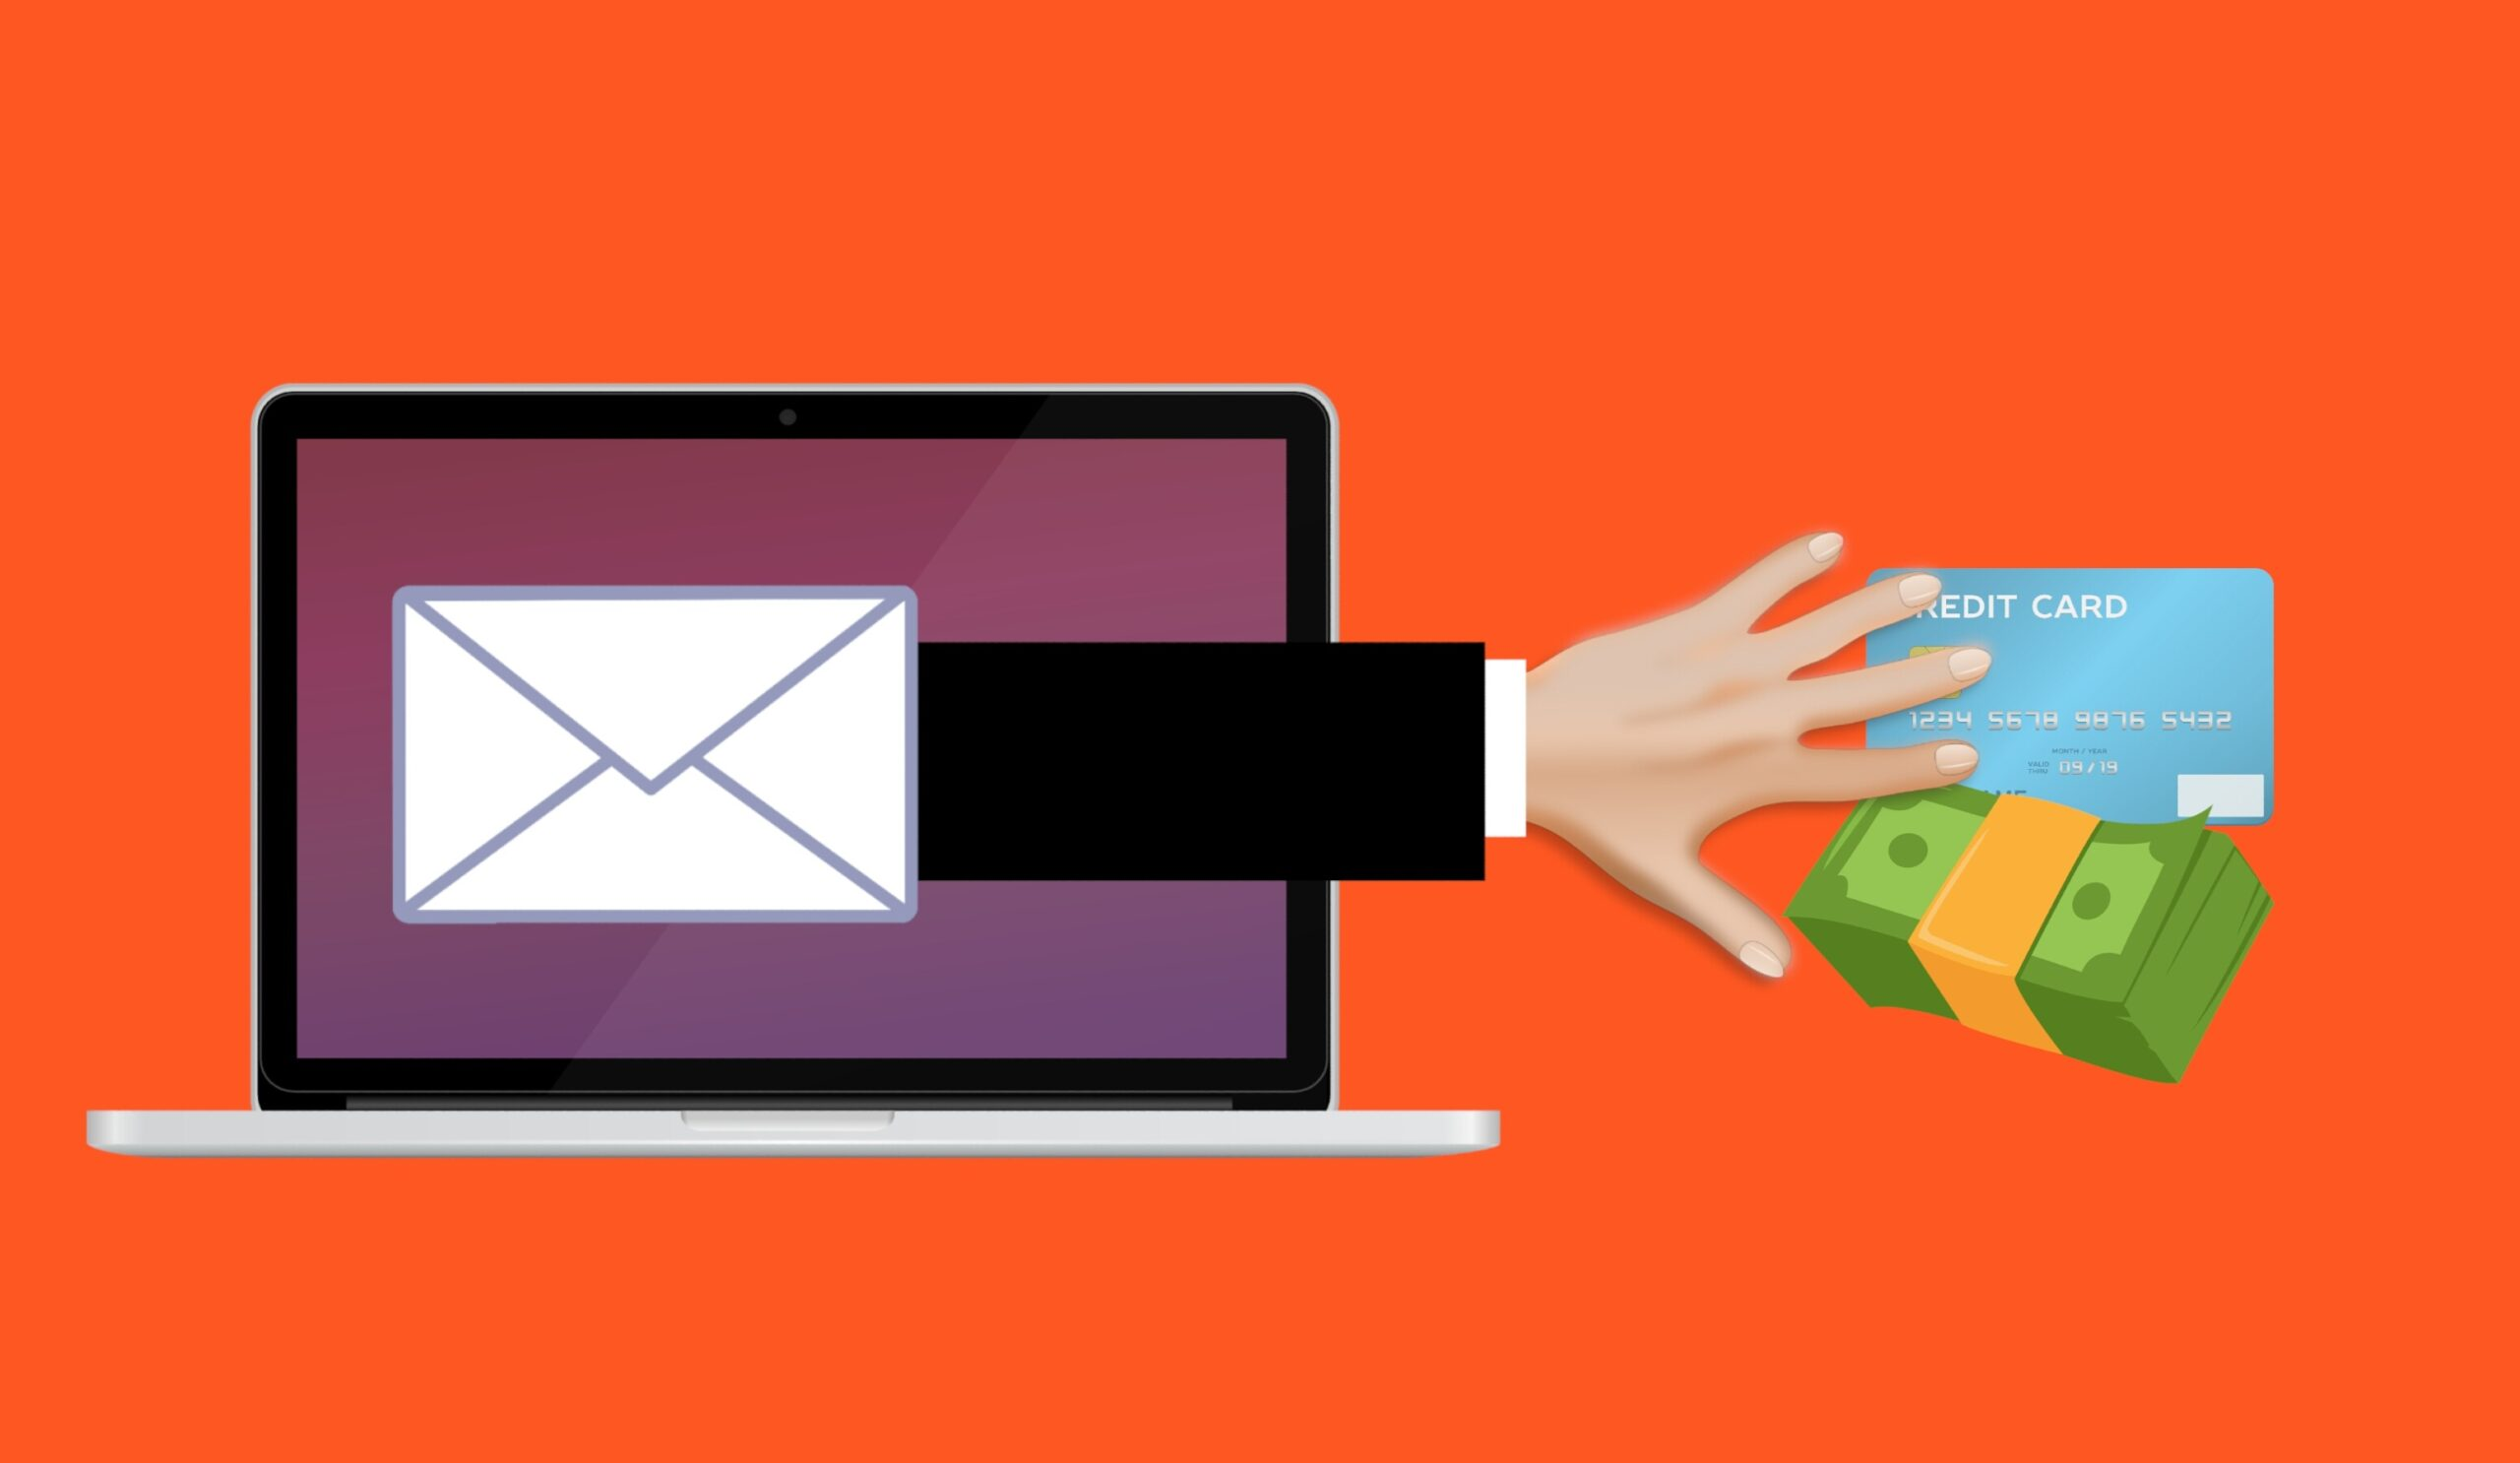 Image illustrating Scam Phishing Fraud Email Attack Mail Online